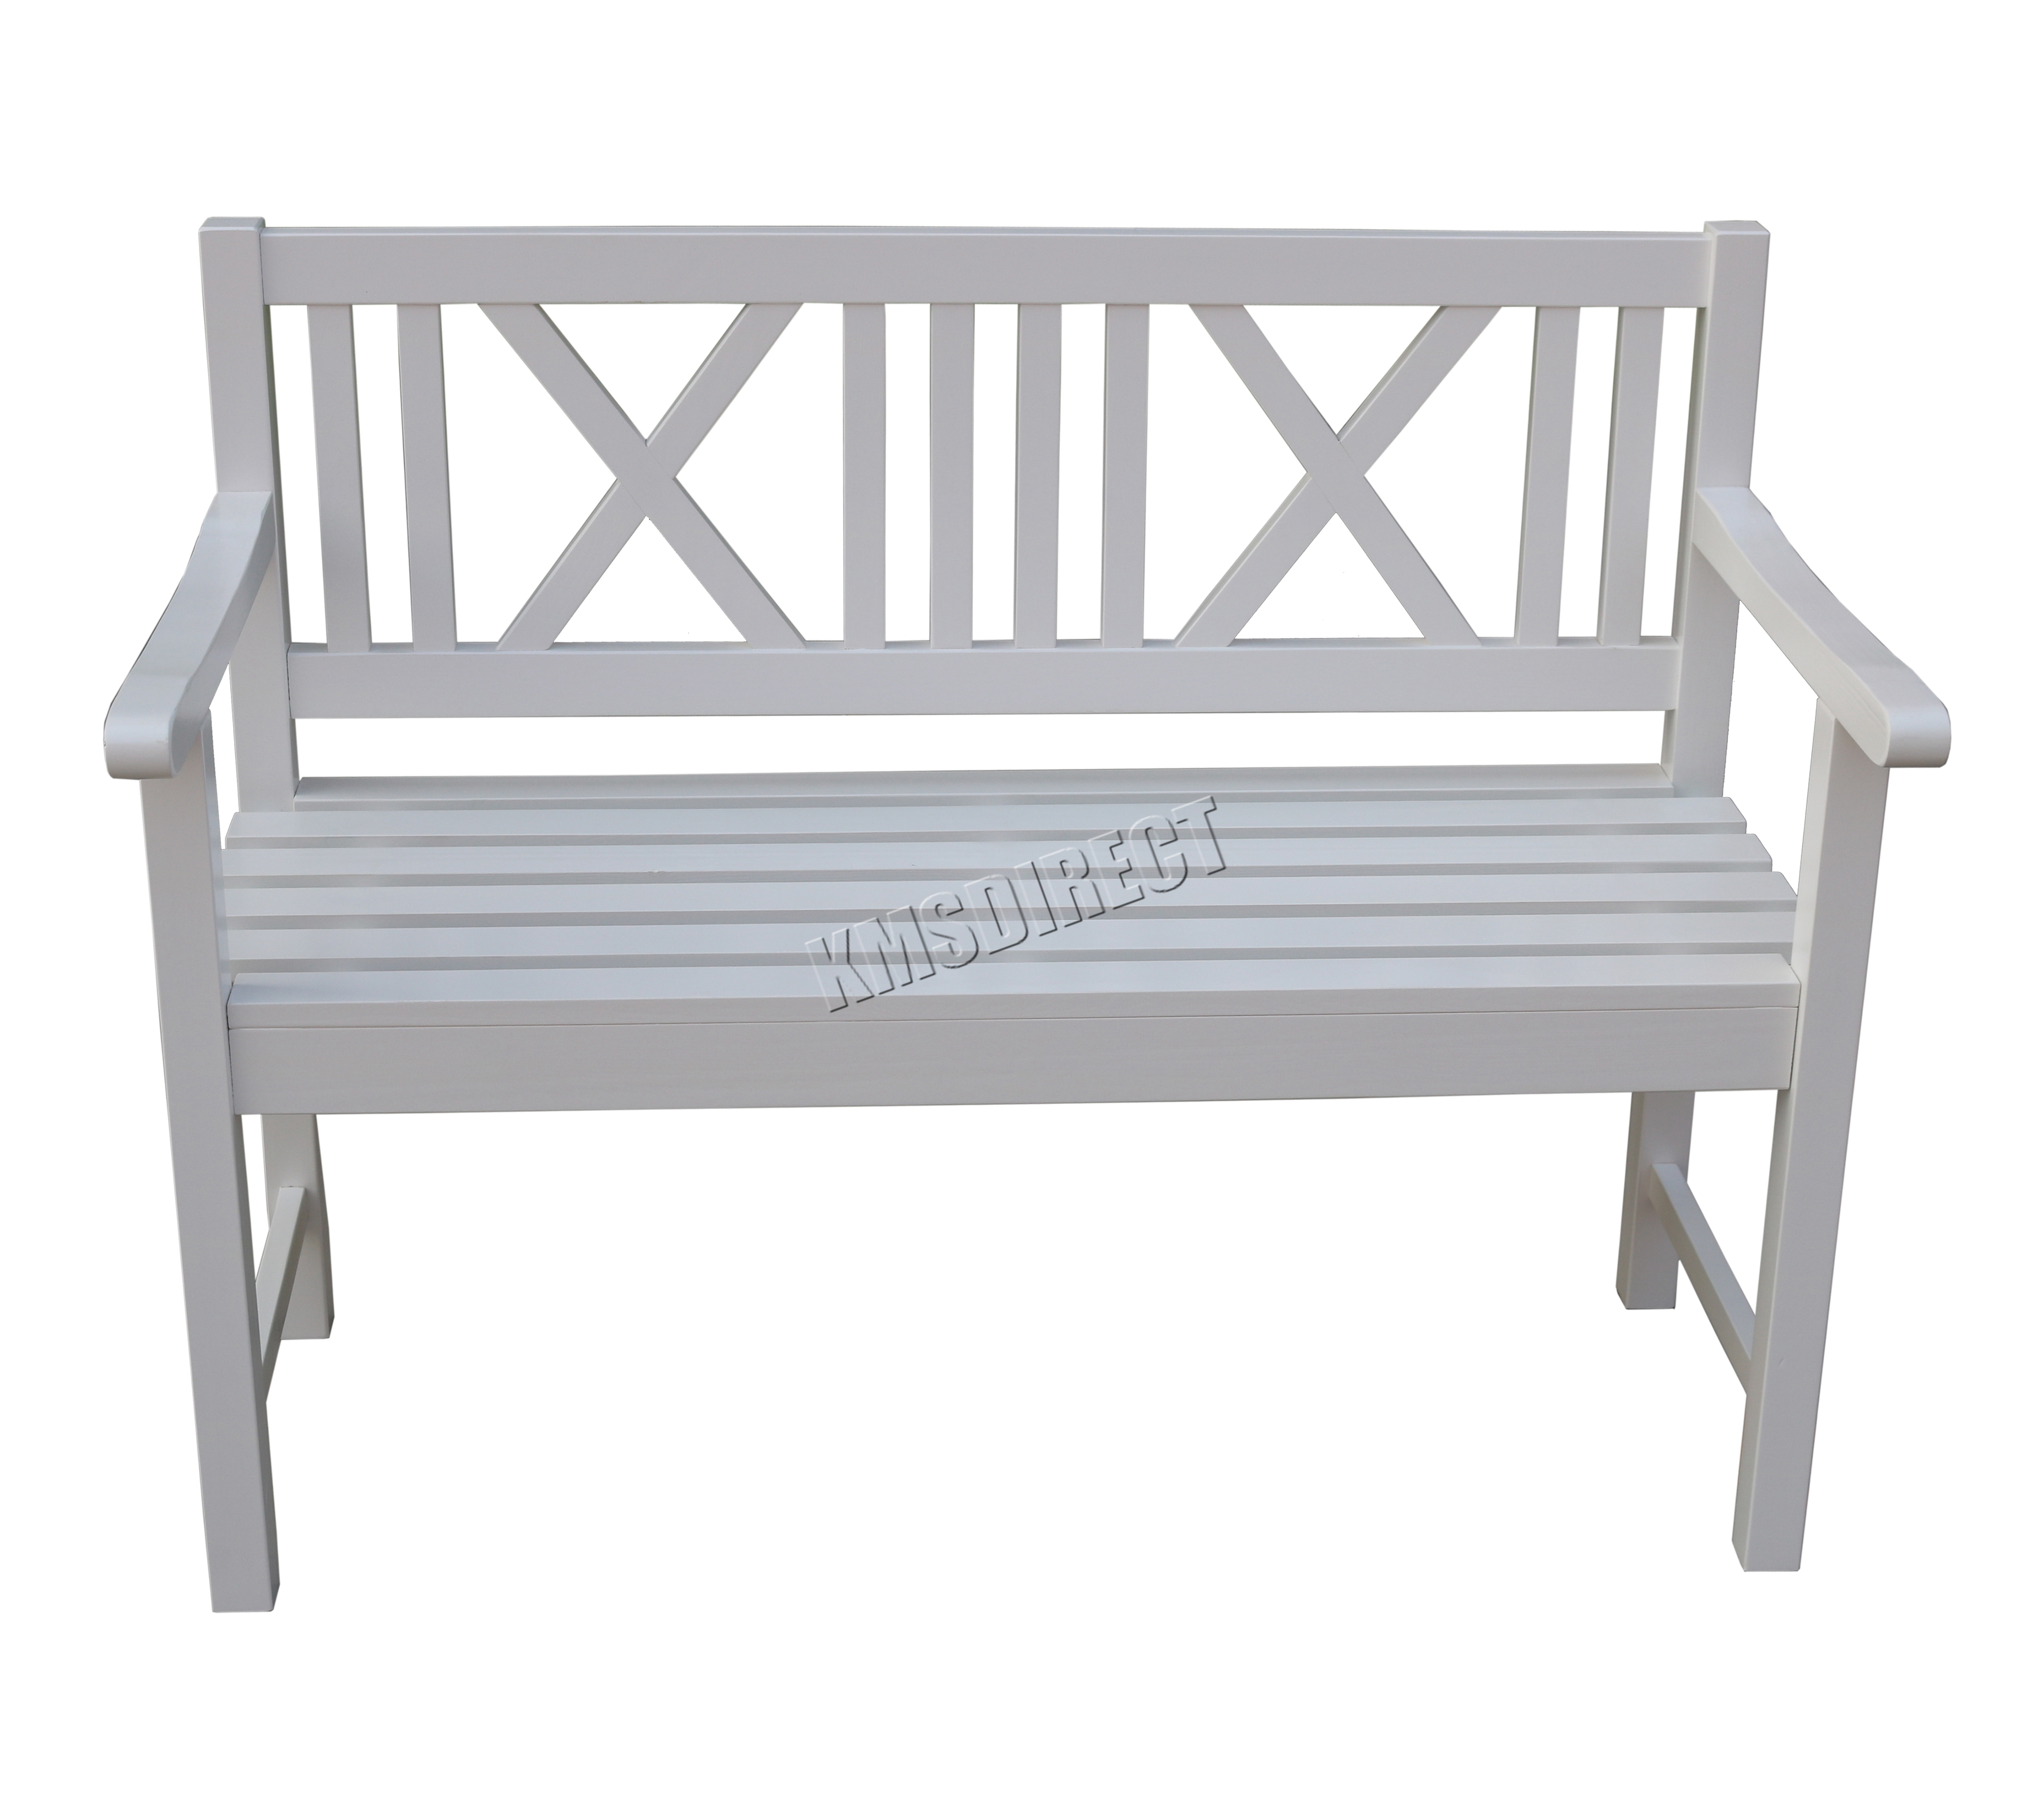 productdisplay white rose uniacke bench painted garden regency iron wrought